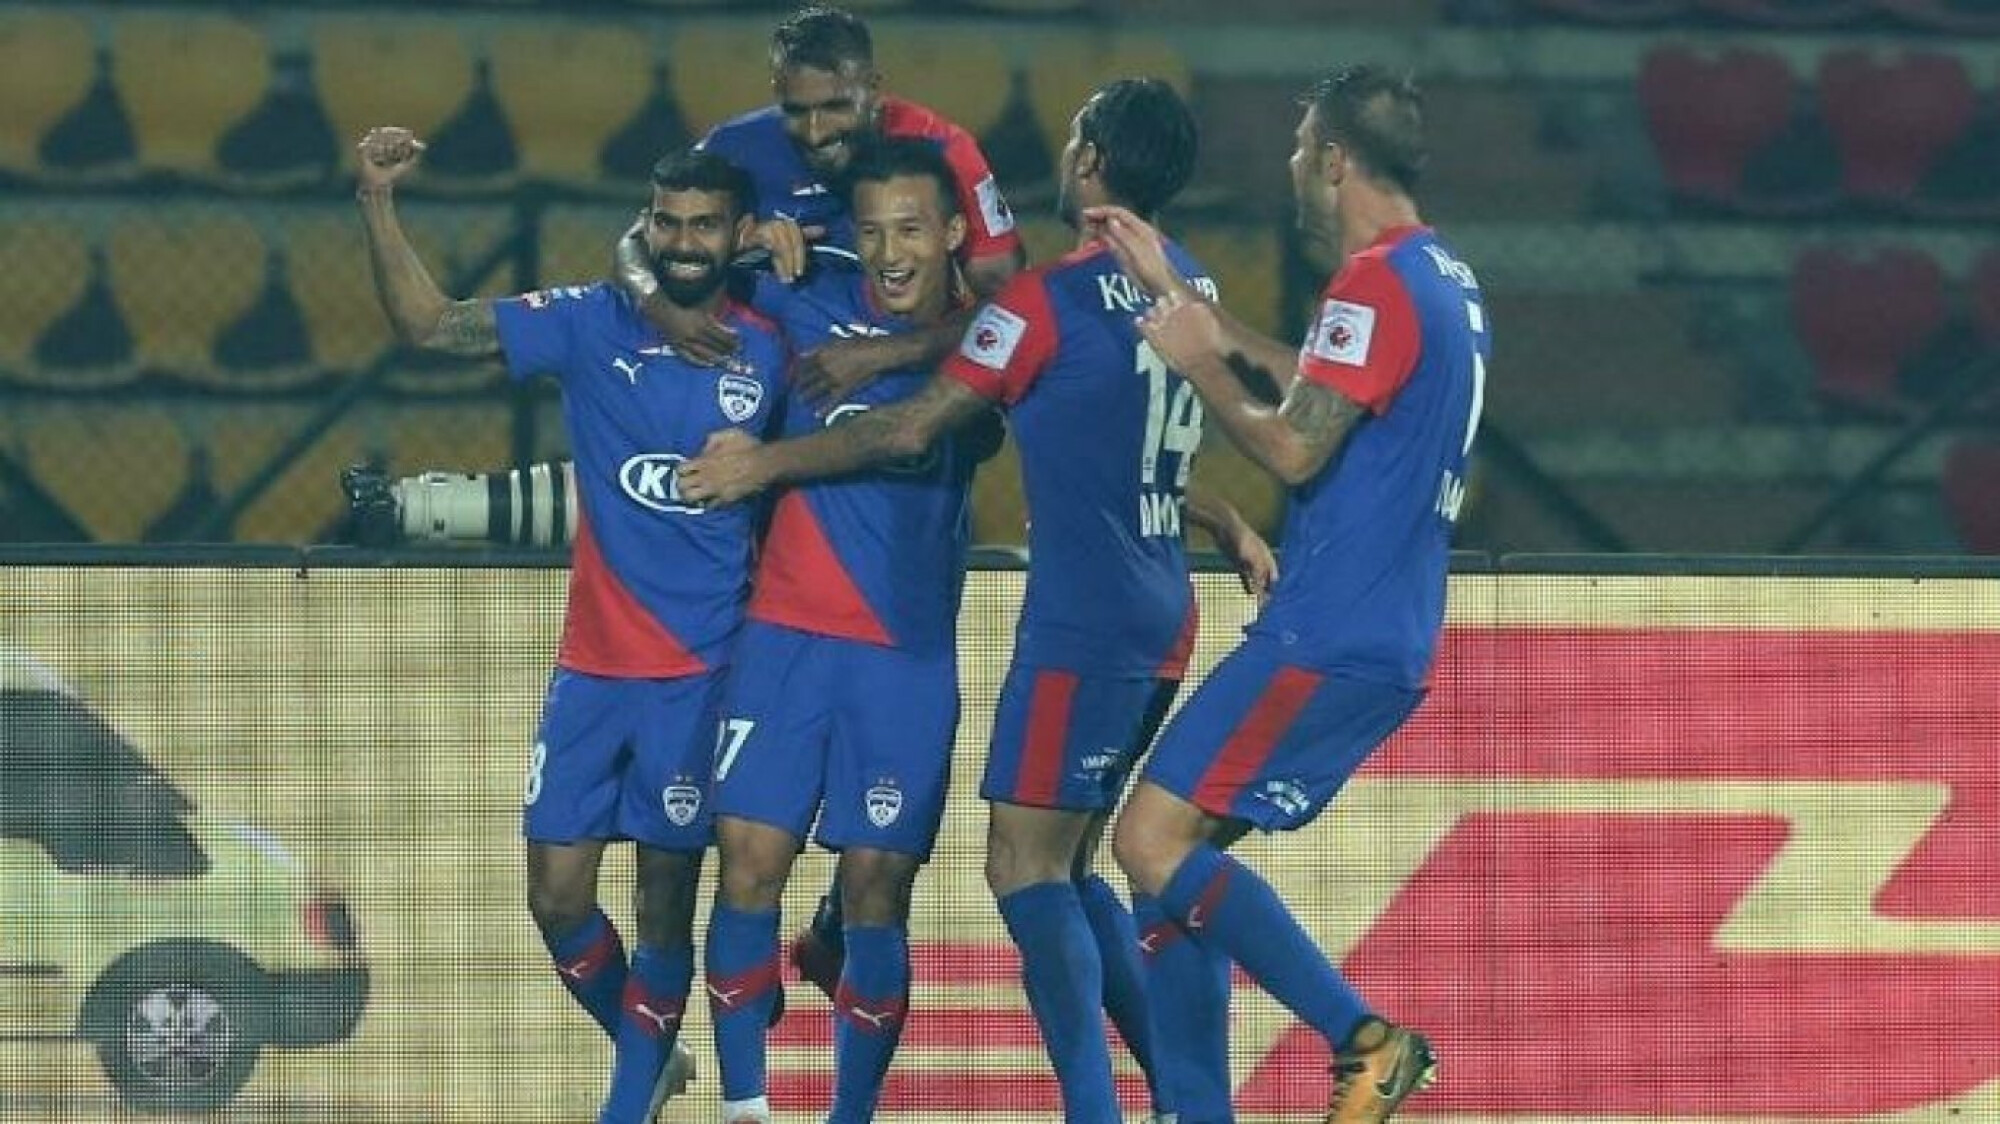 ISL 2018-19: Wasteful NorthEast United handed defeat by Bengaluru FC